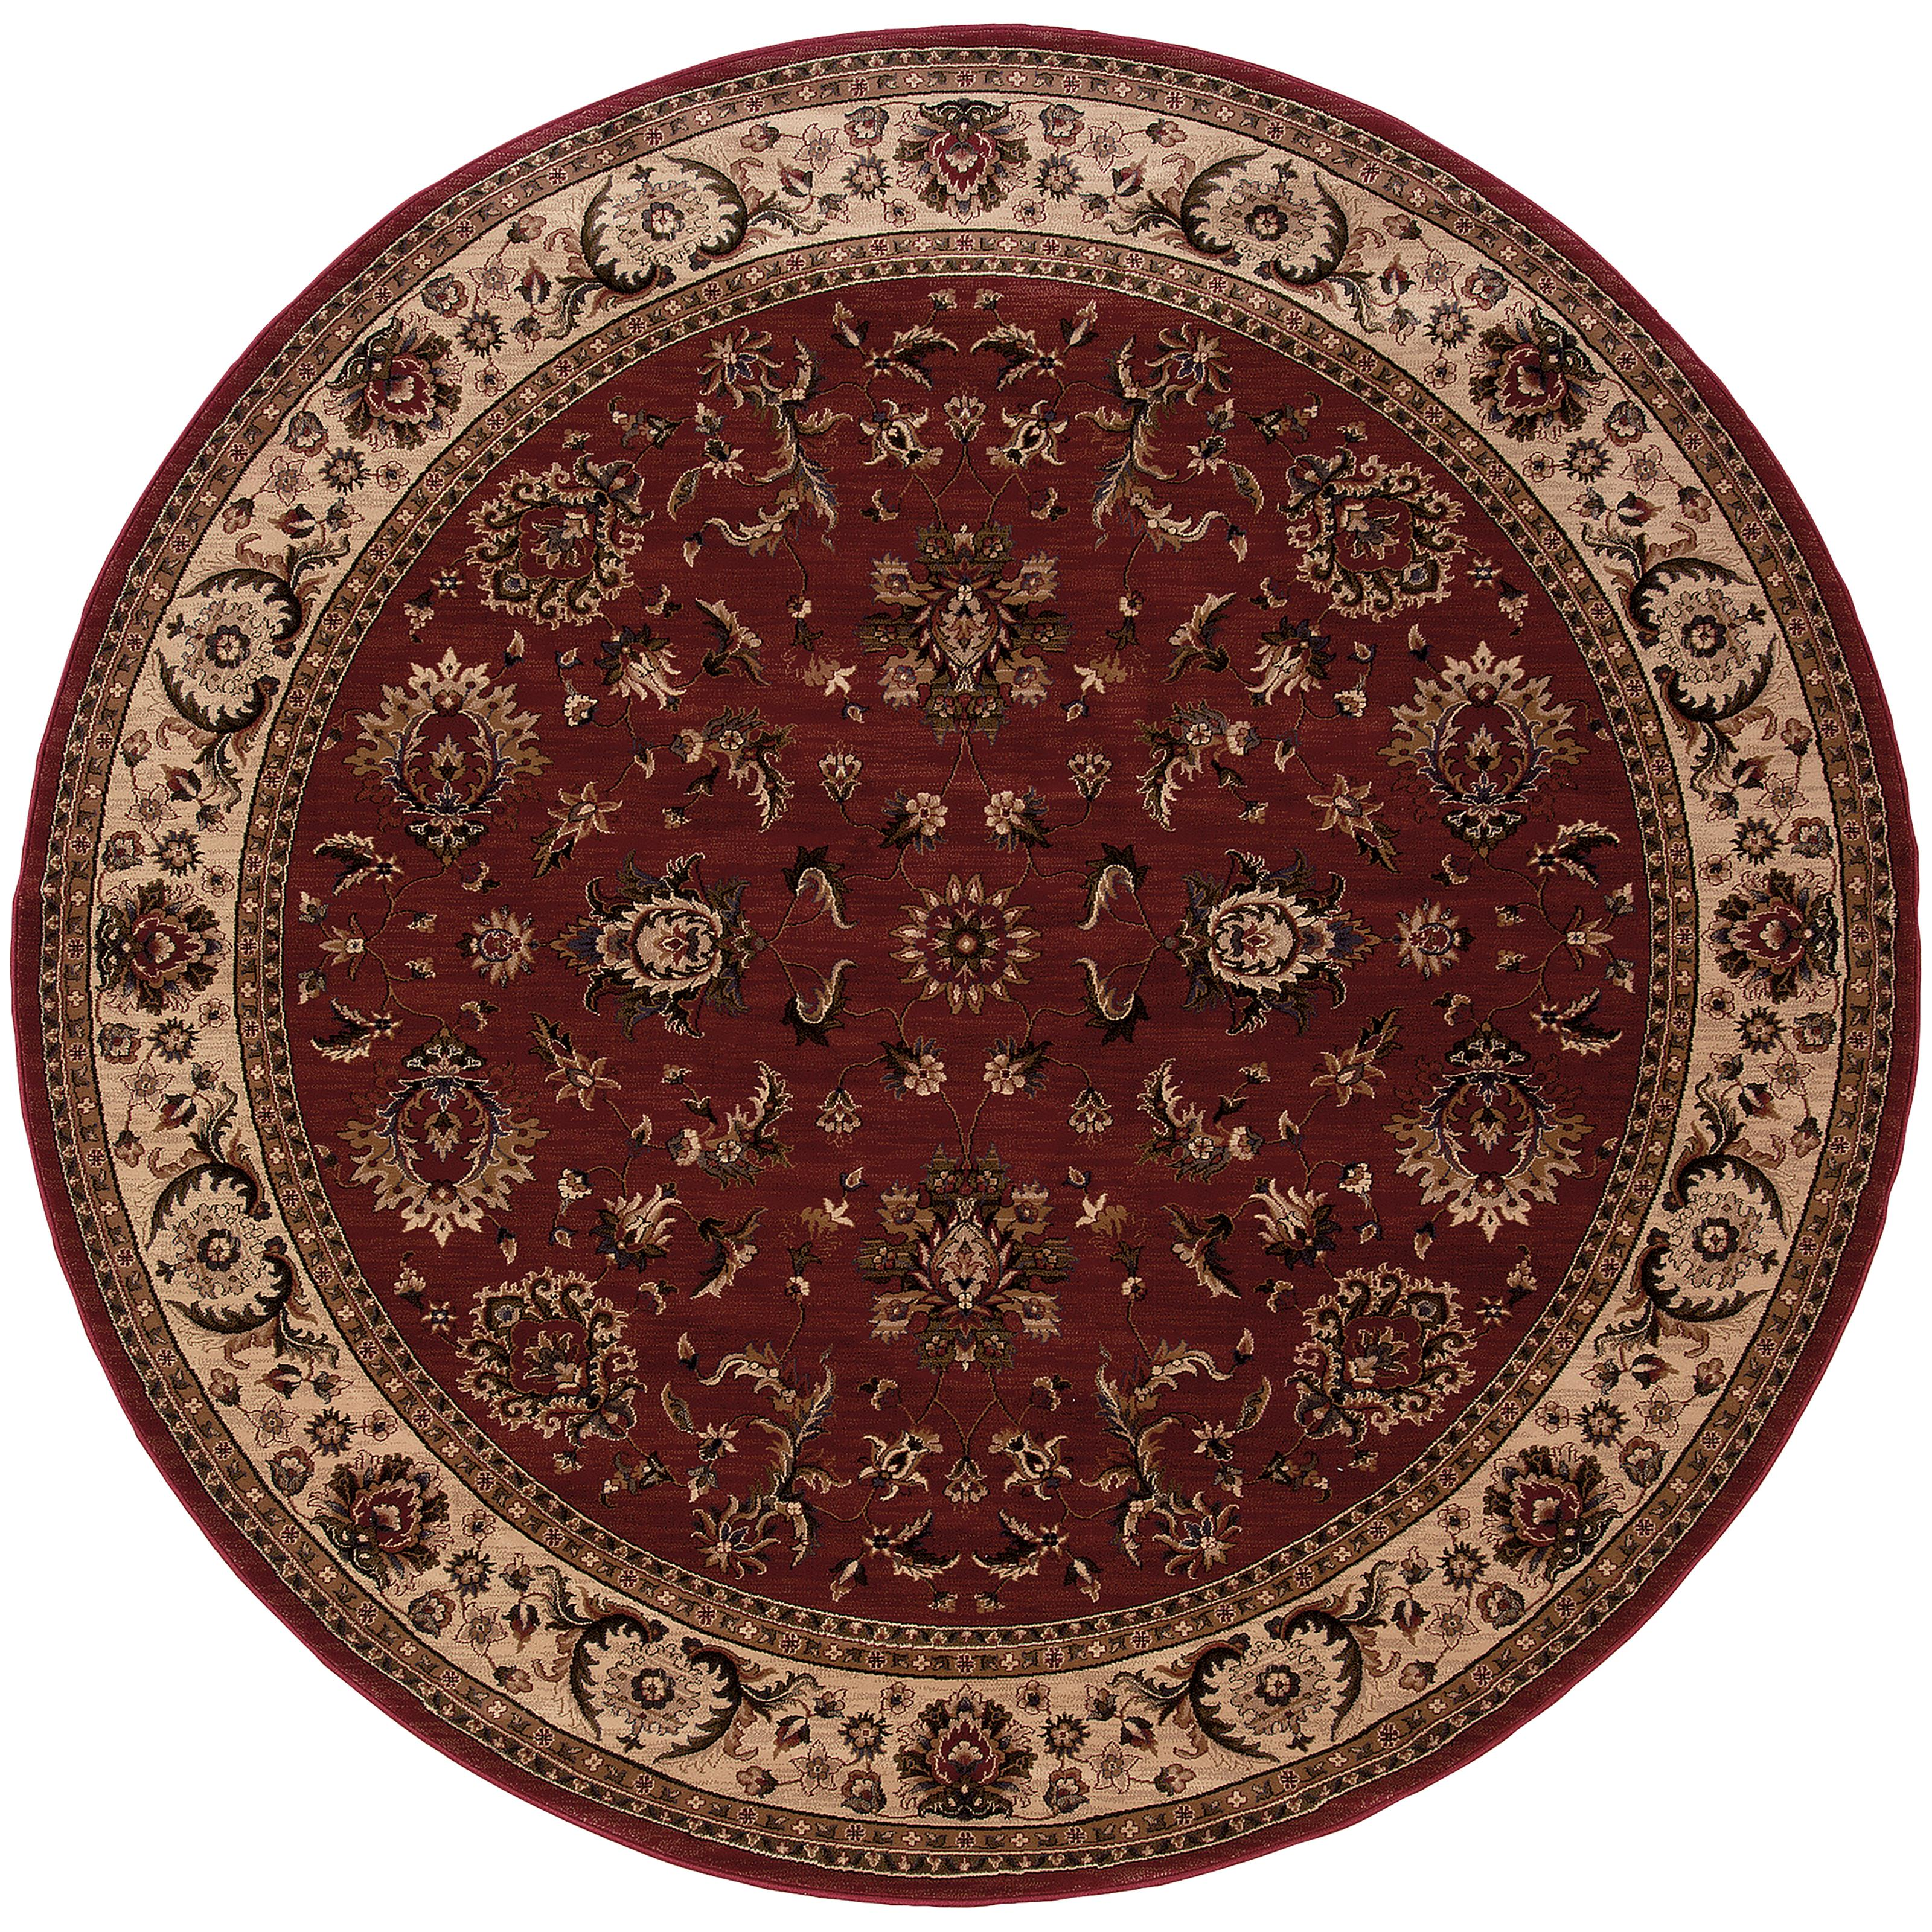 Ariana 6' Rug by Oriental Weavers at Esprit Decor Home Furnishings